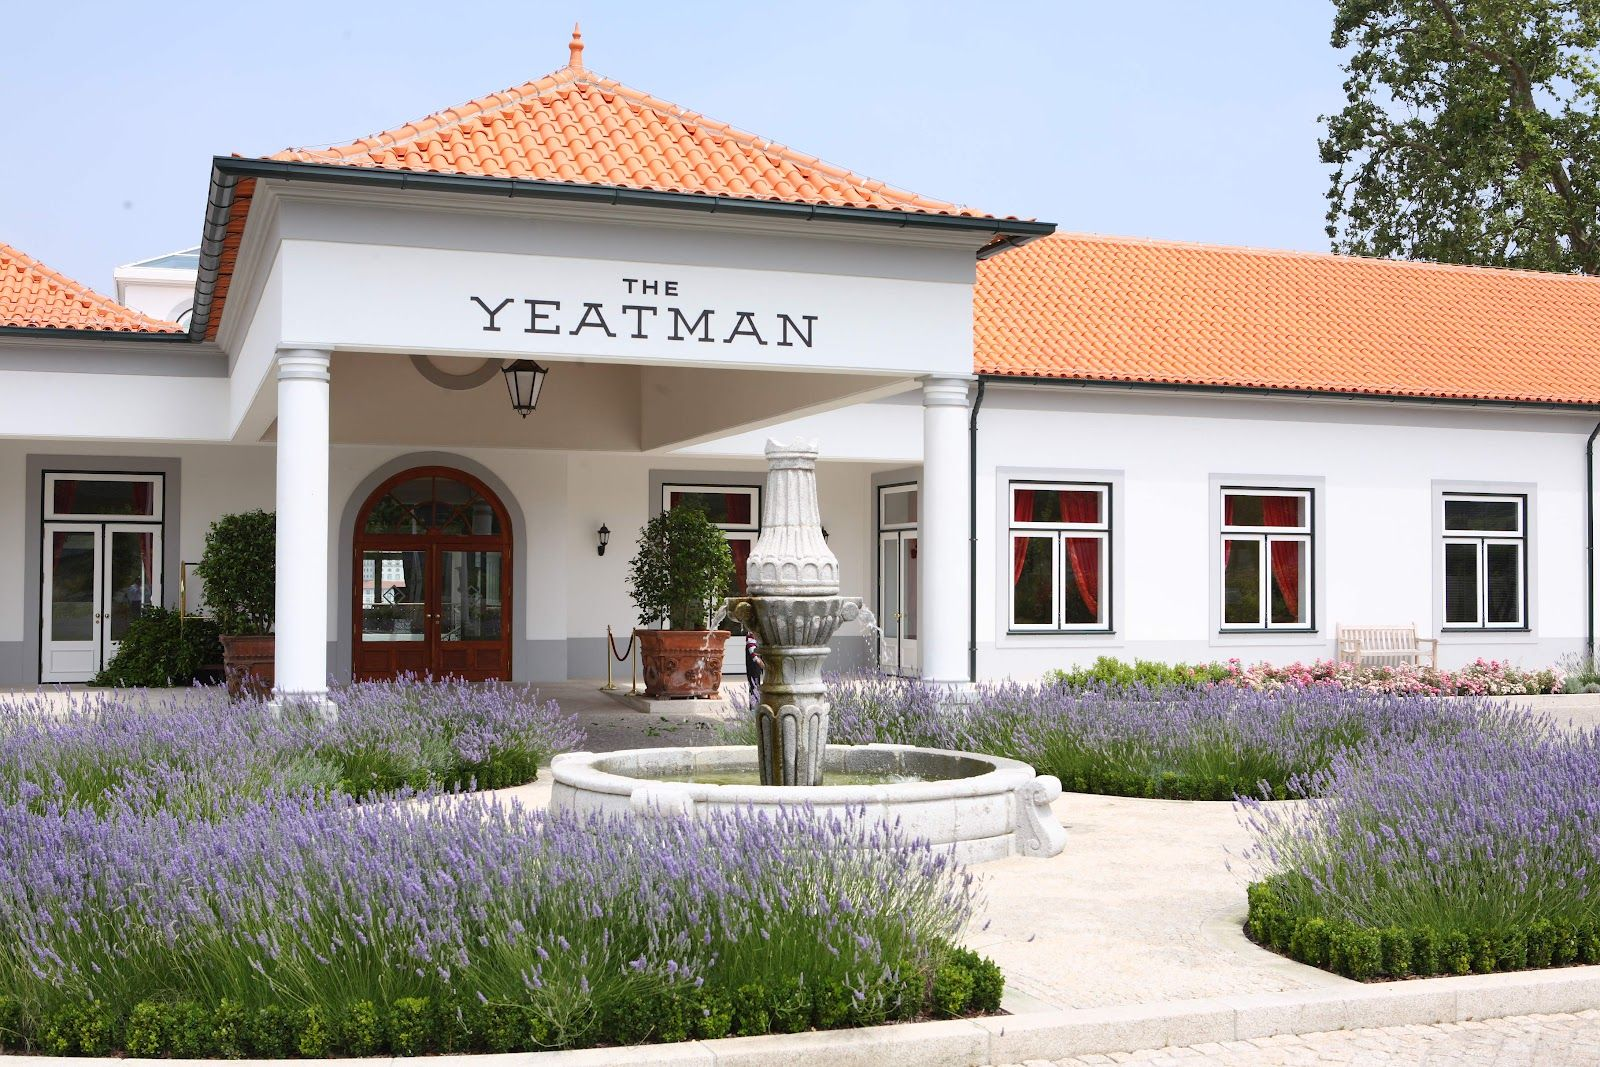 the yeatman (22)